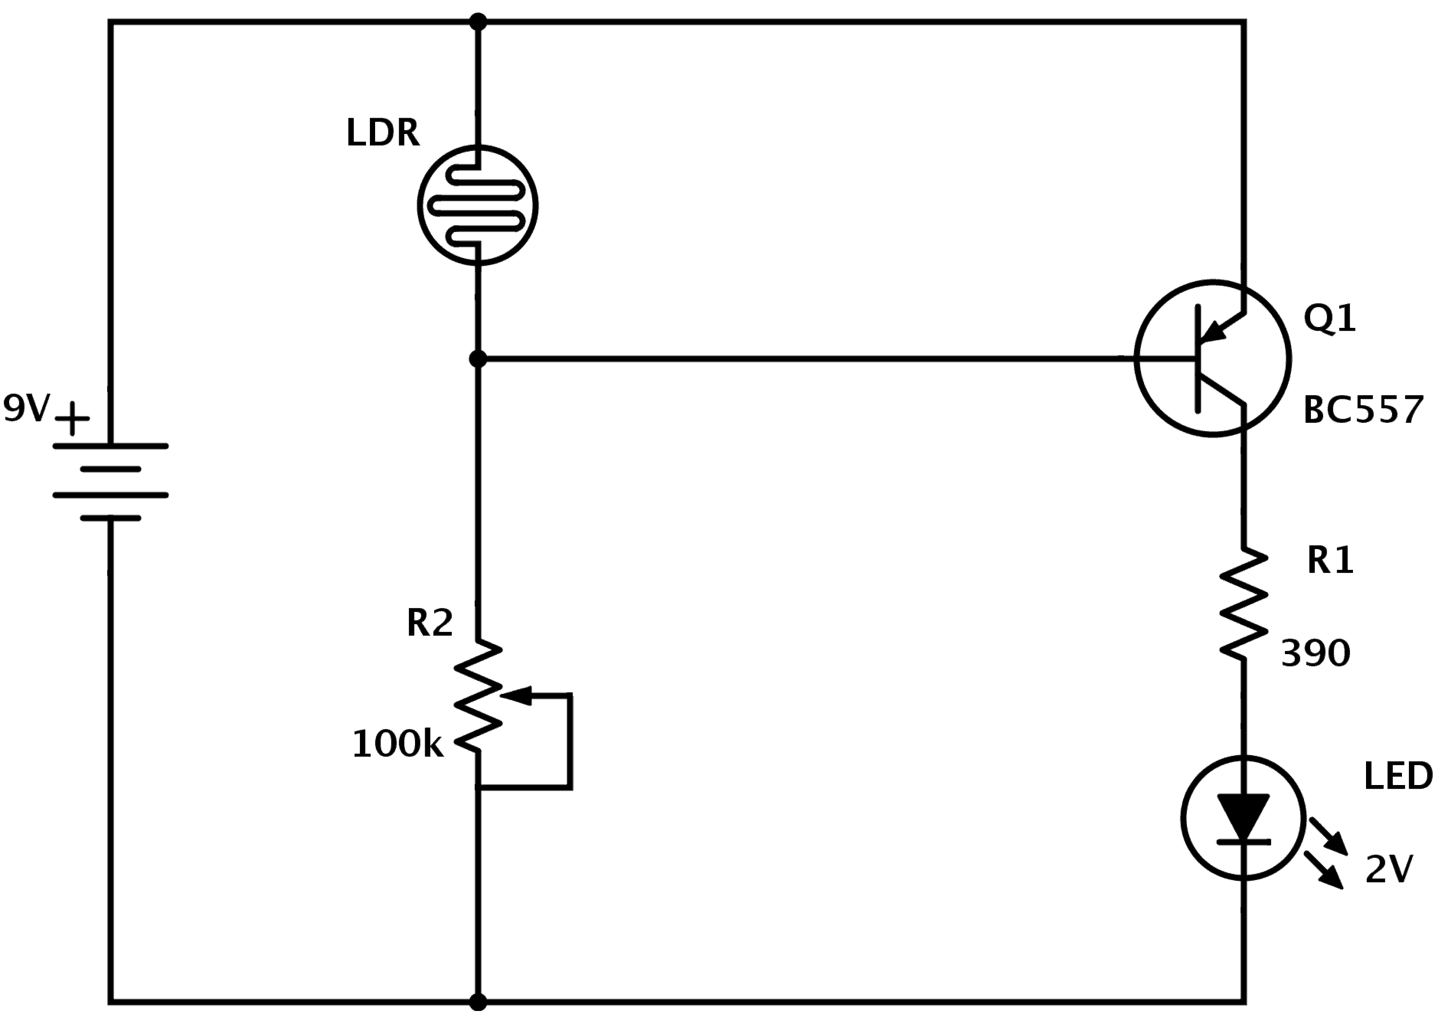 Ldr Circuit Diagram Build Electronic Circuits Volt Amp Meter Wiring For Led With Pnp Transistor Dark Detector